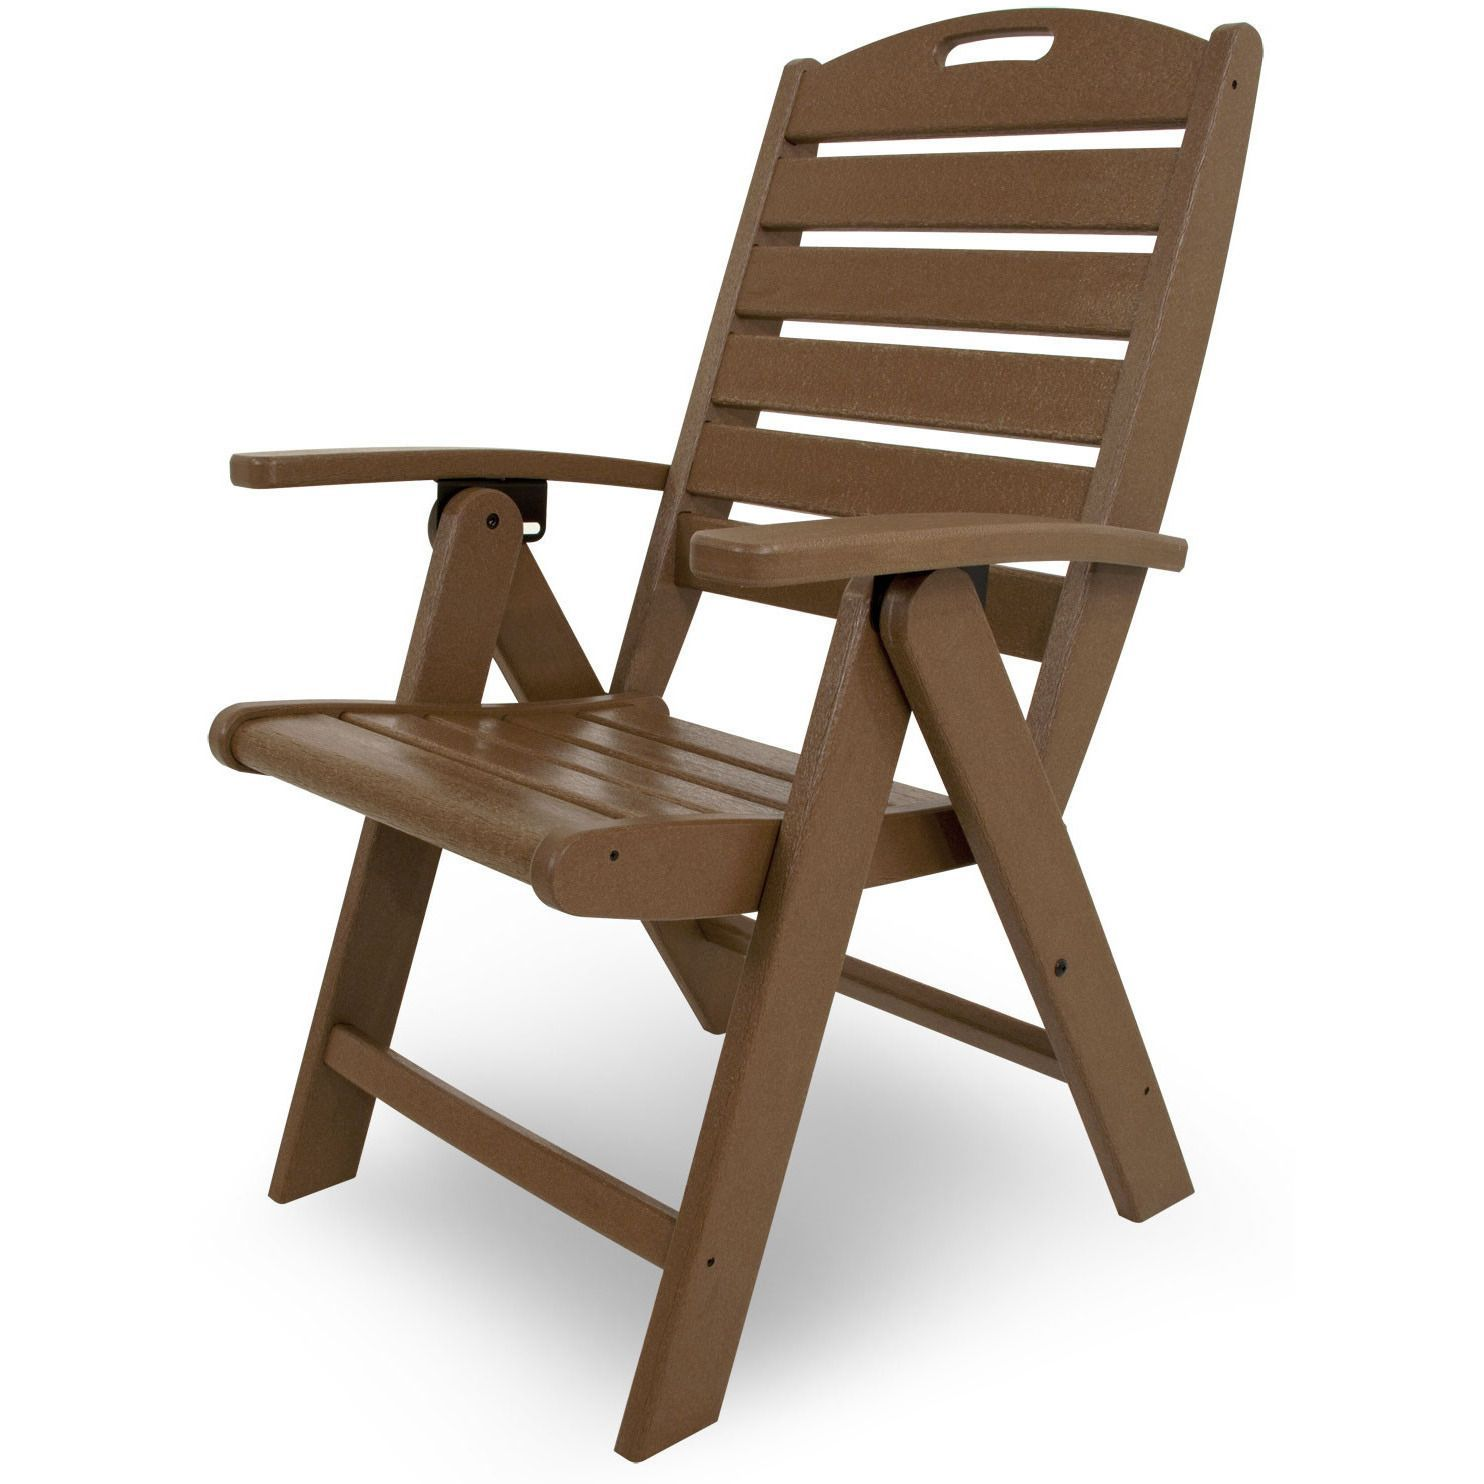 Trex Outdoor Furniture Yacht Club Highback Chair